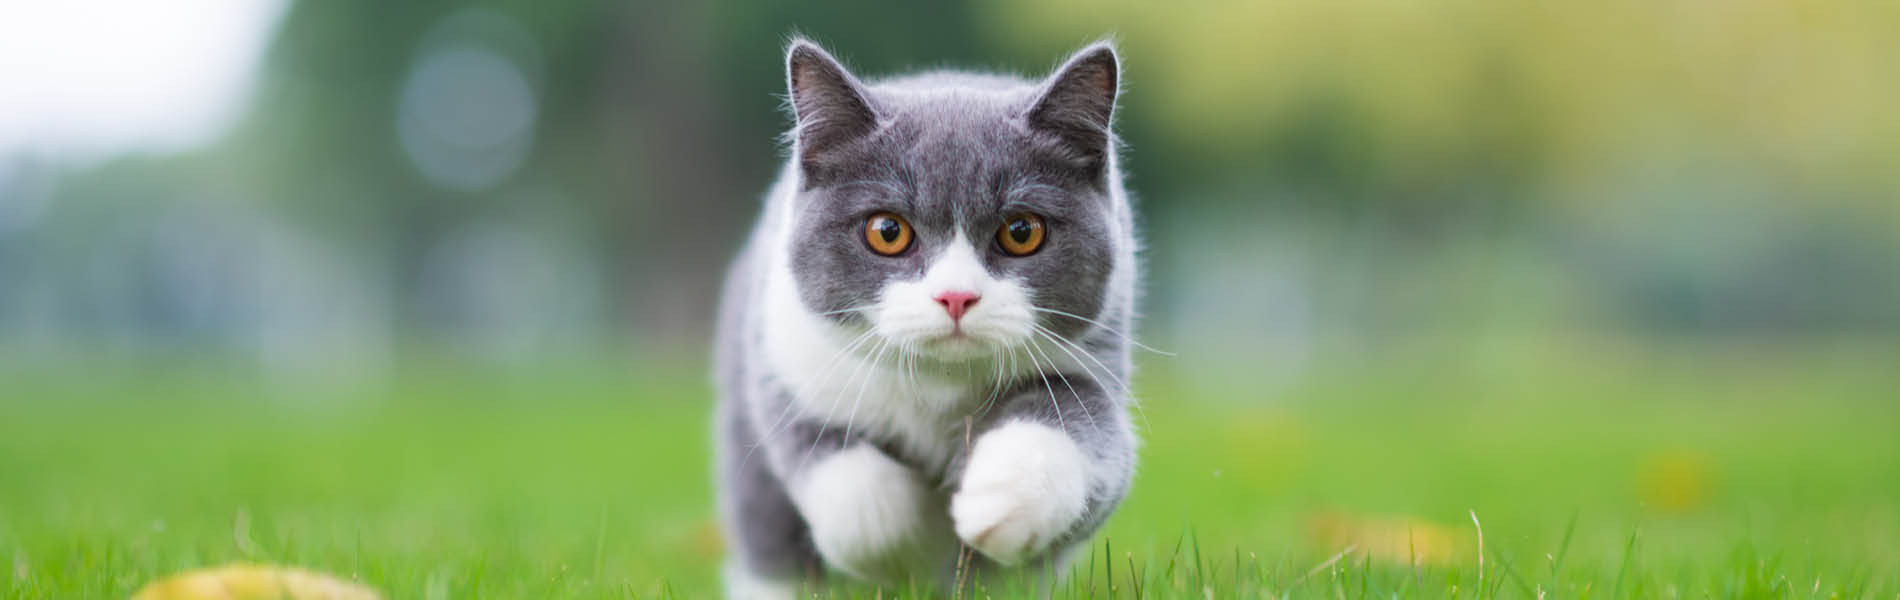 Protection antiparasites pour chats 3